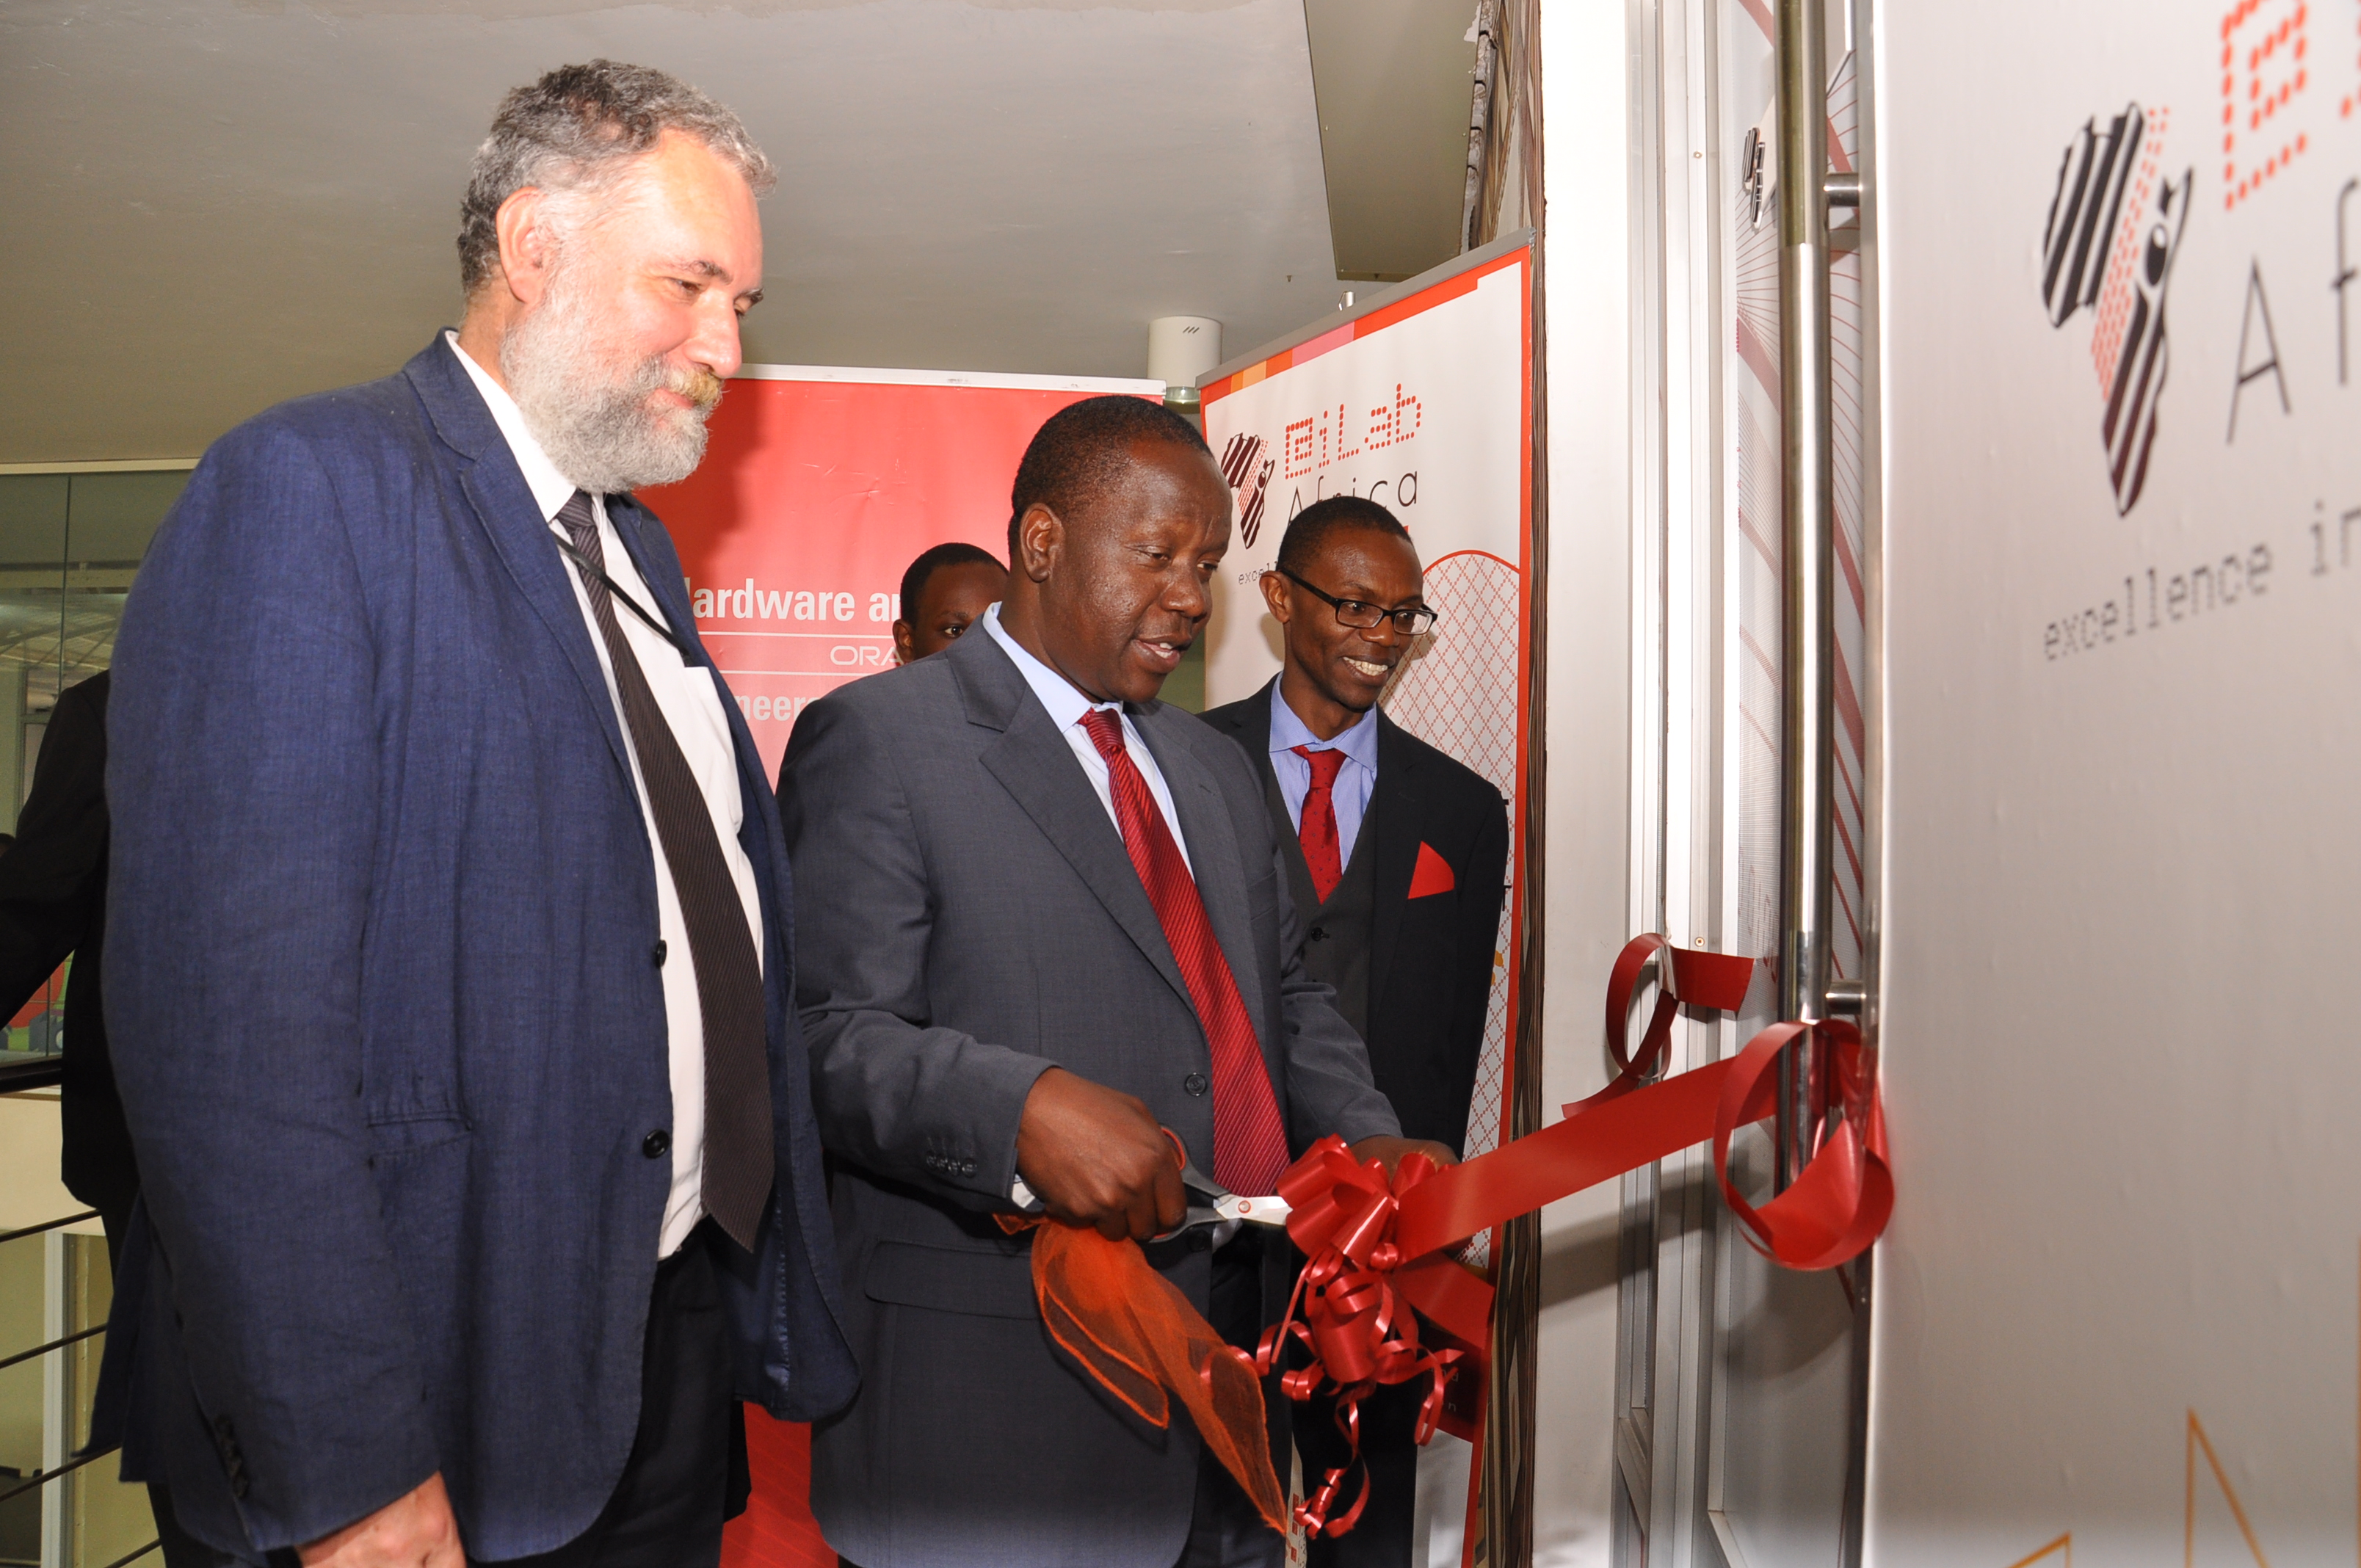 Photo of Cabinet Secretary launching Strathmore Centre of Excellence for Oracle